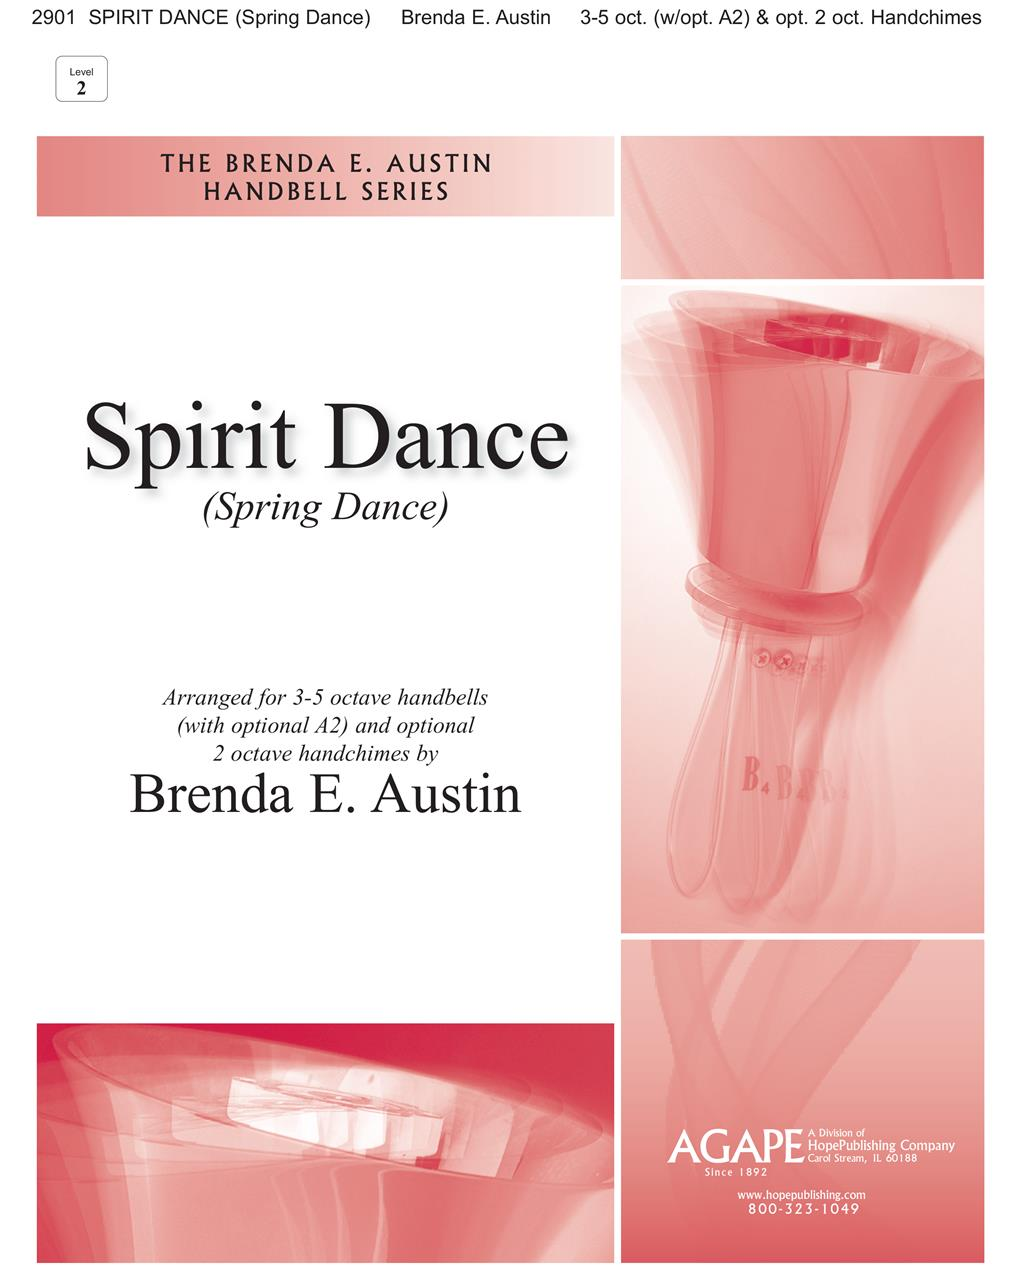 Spirit Dance - 3-5 Oct. Cover Image